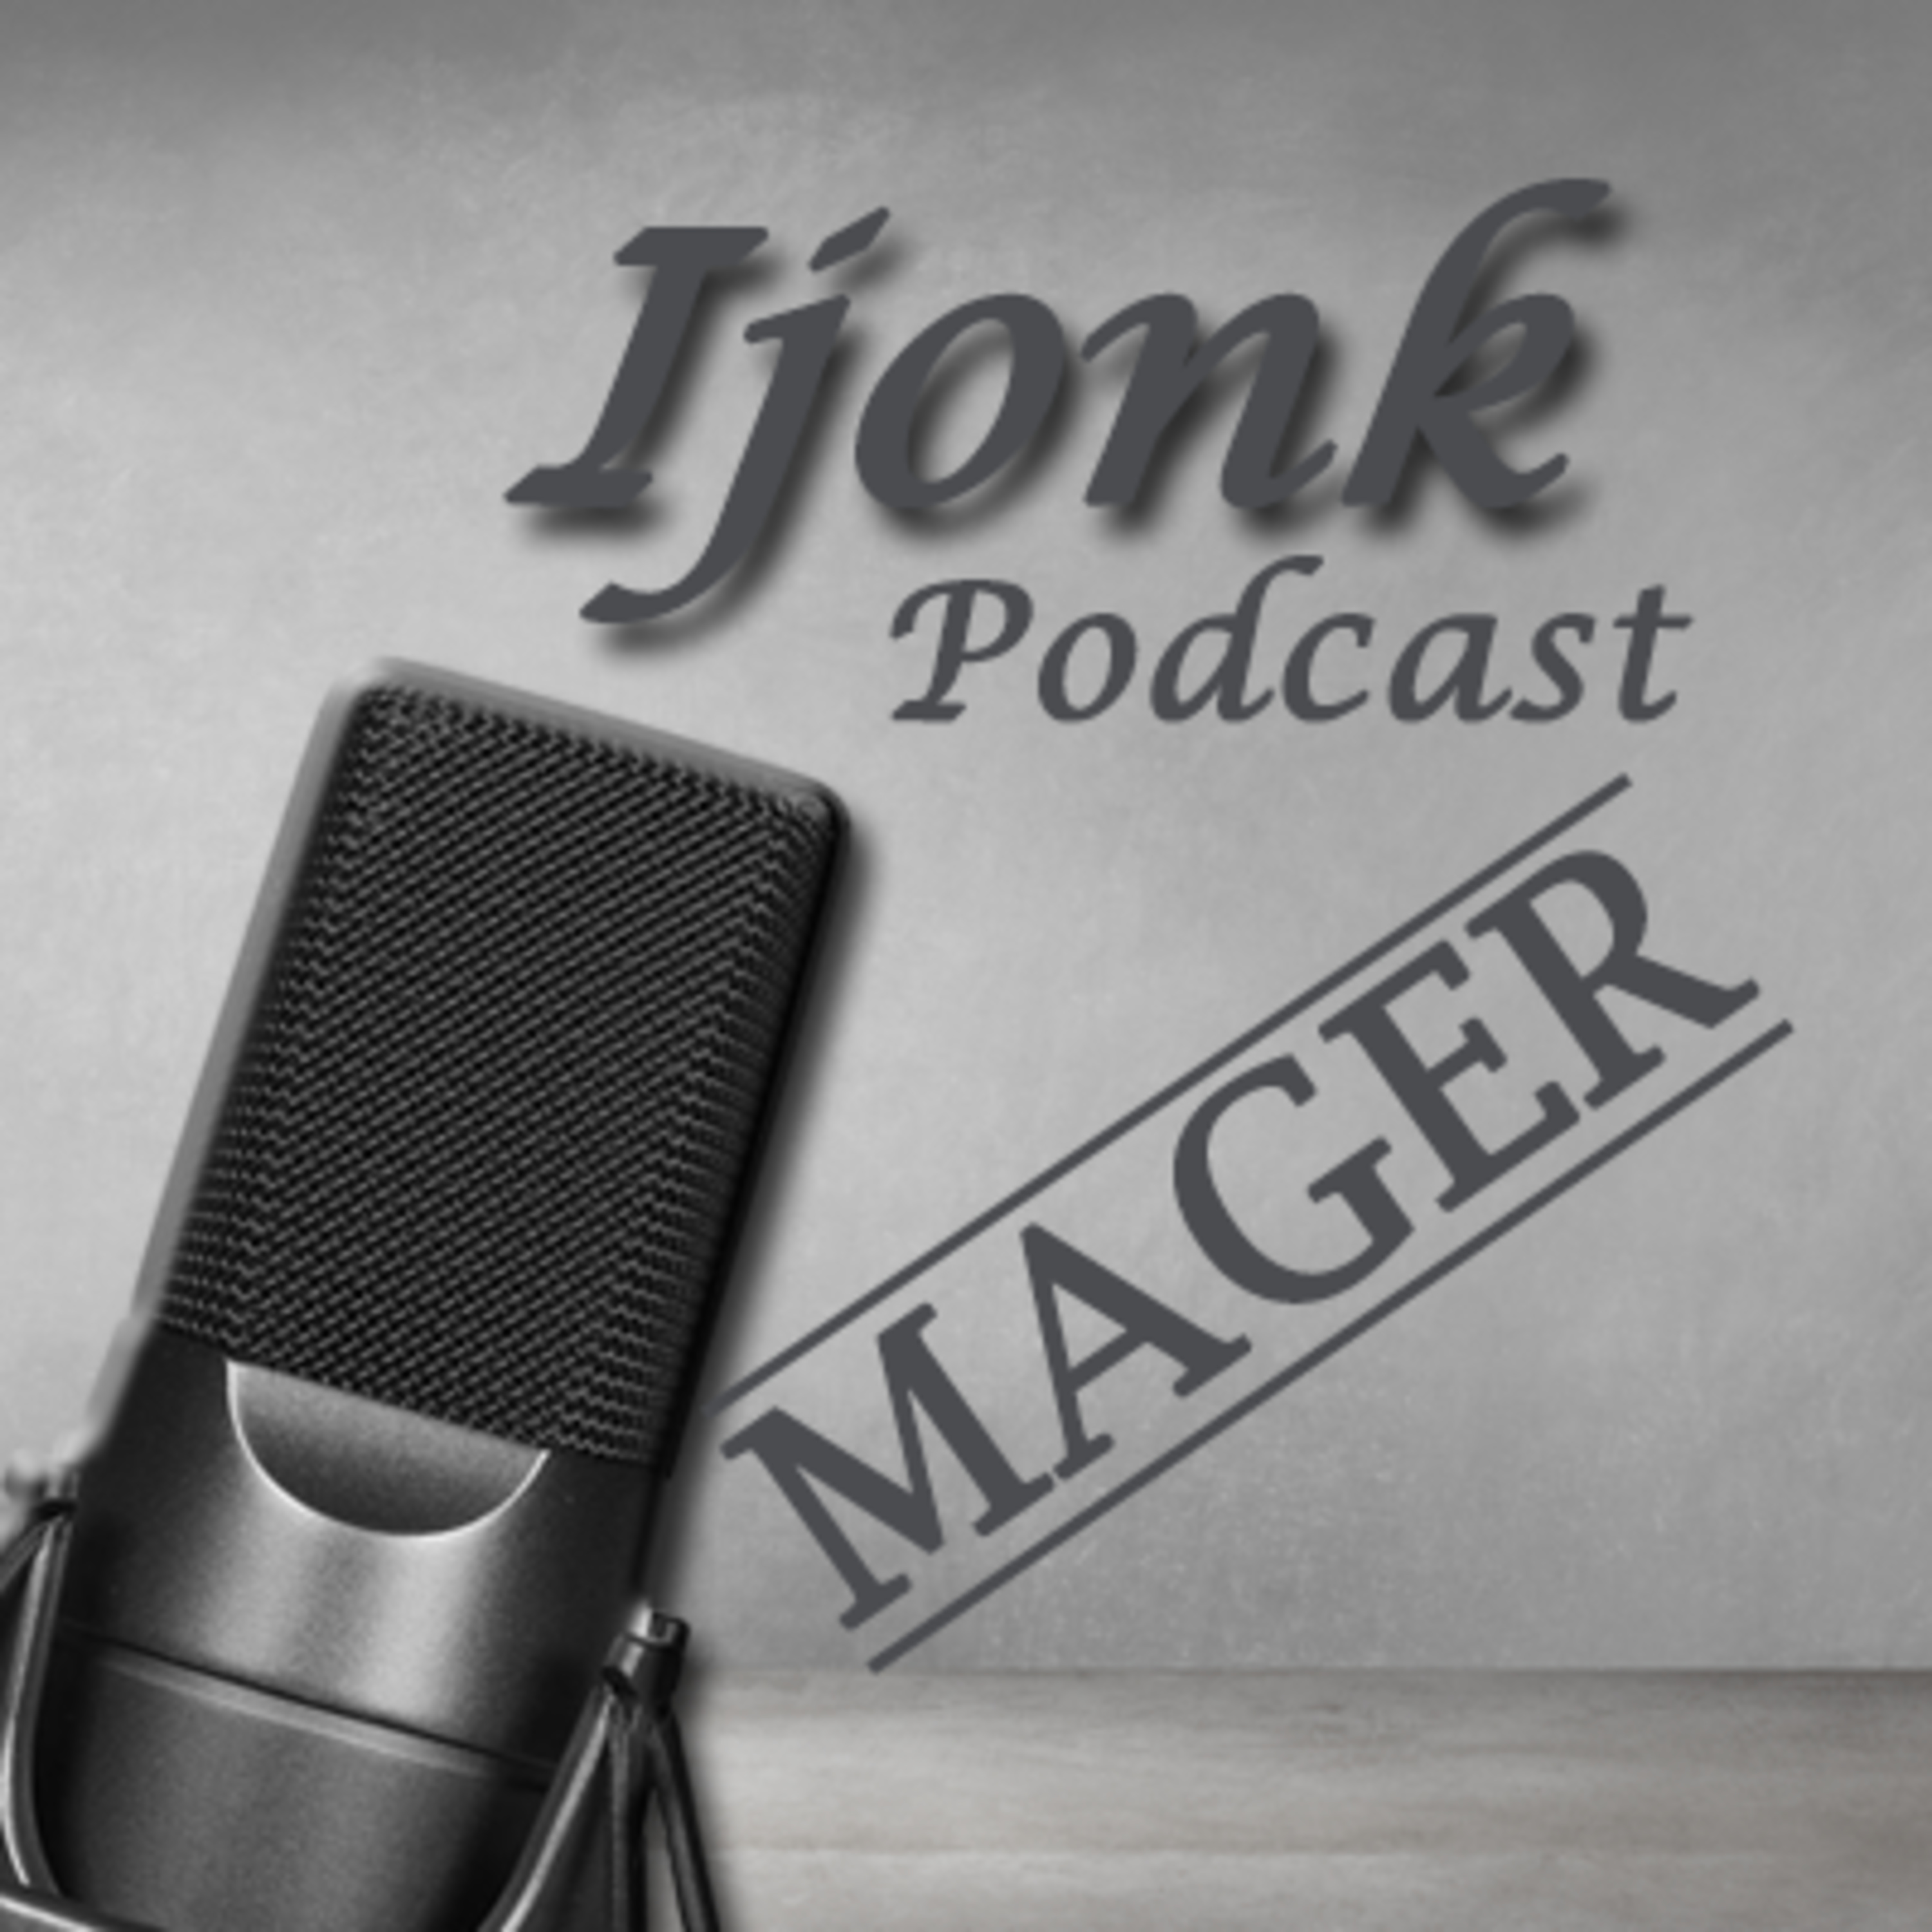 Podcast Mager #Podcast